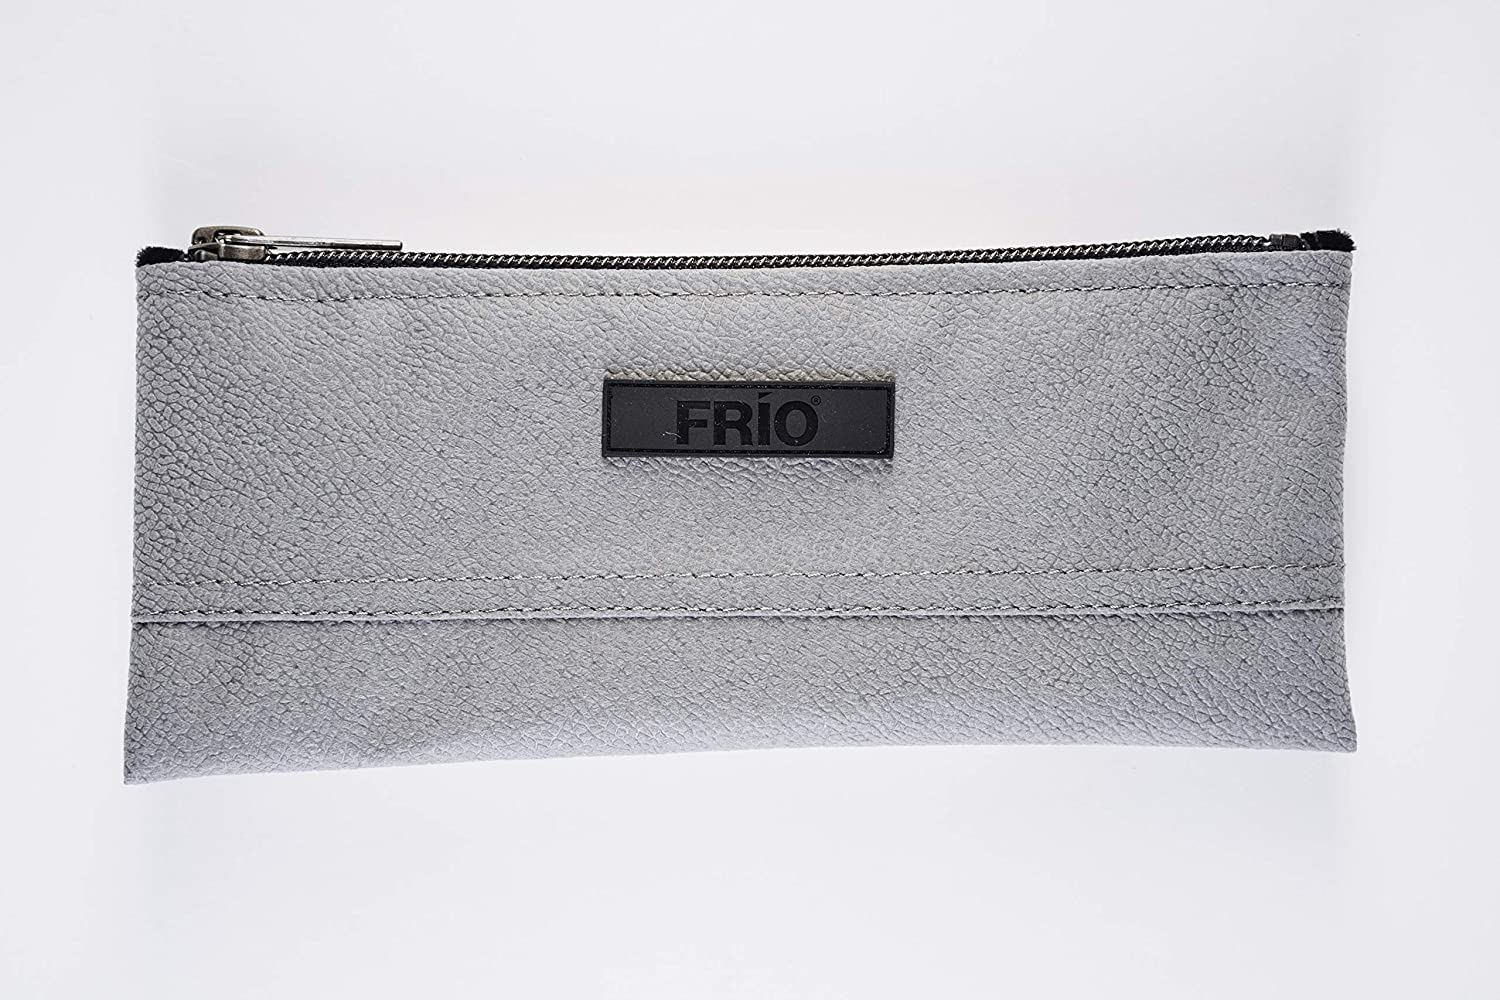 FRIO Medication Cooling Case - *Exclusive* Lifestyle Two (Slate)